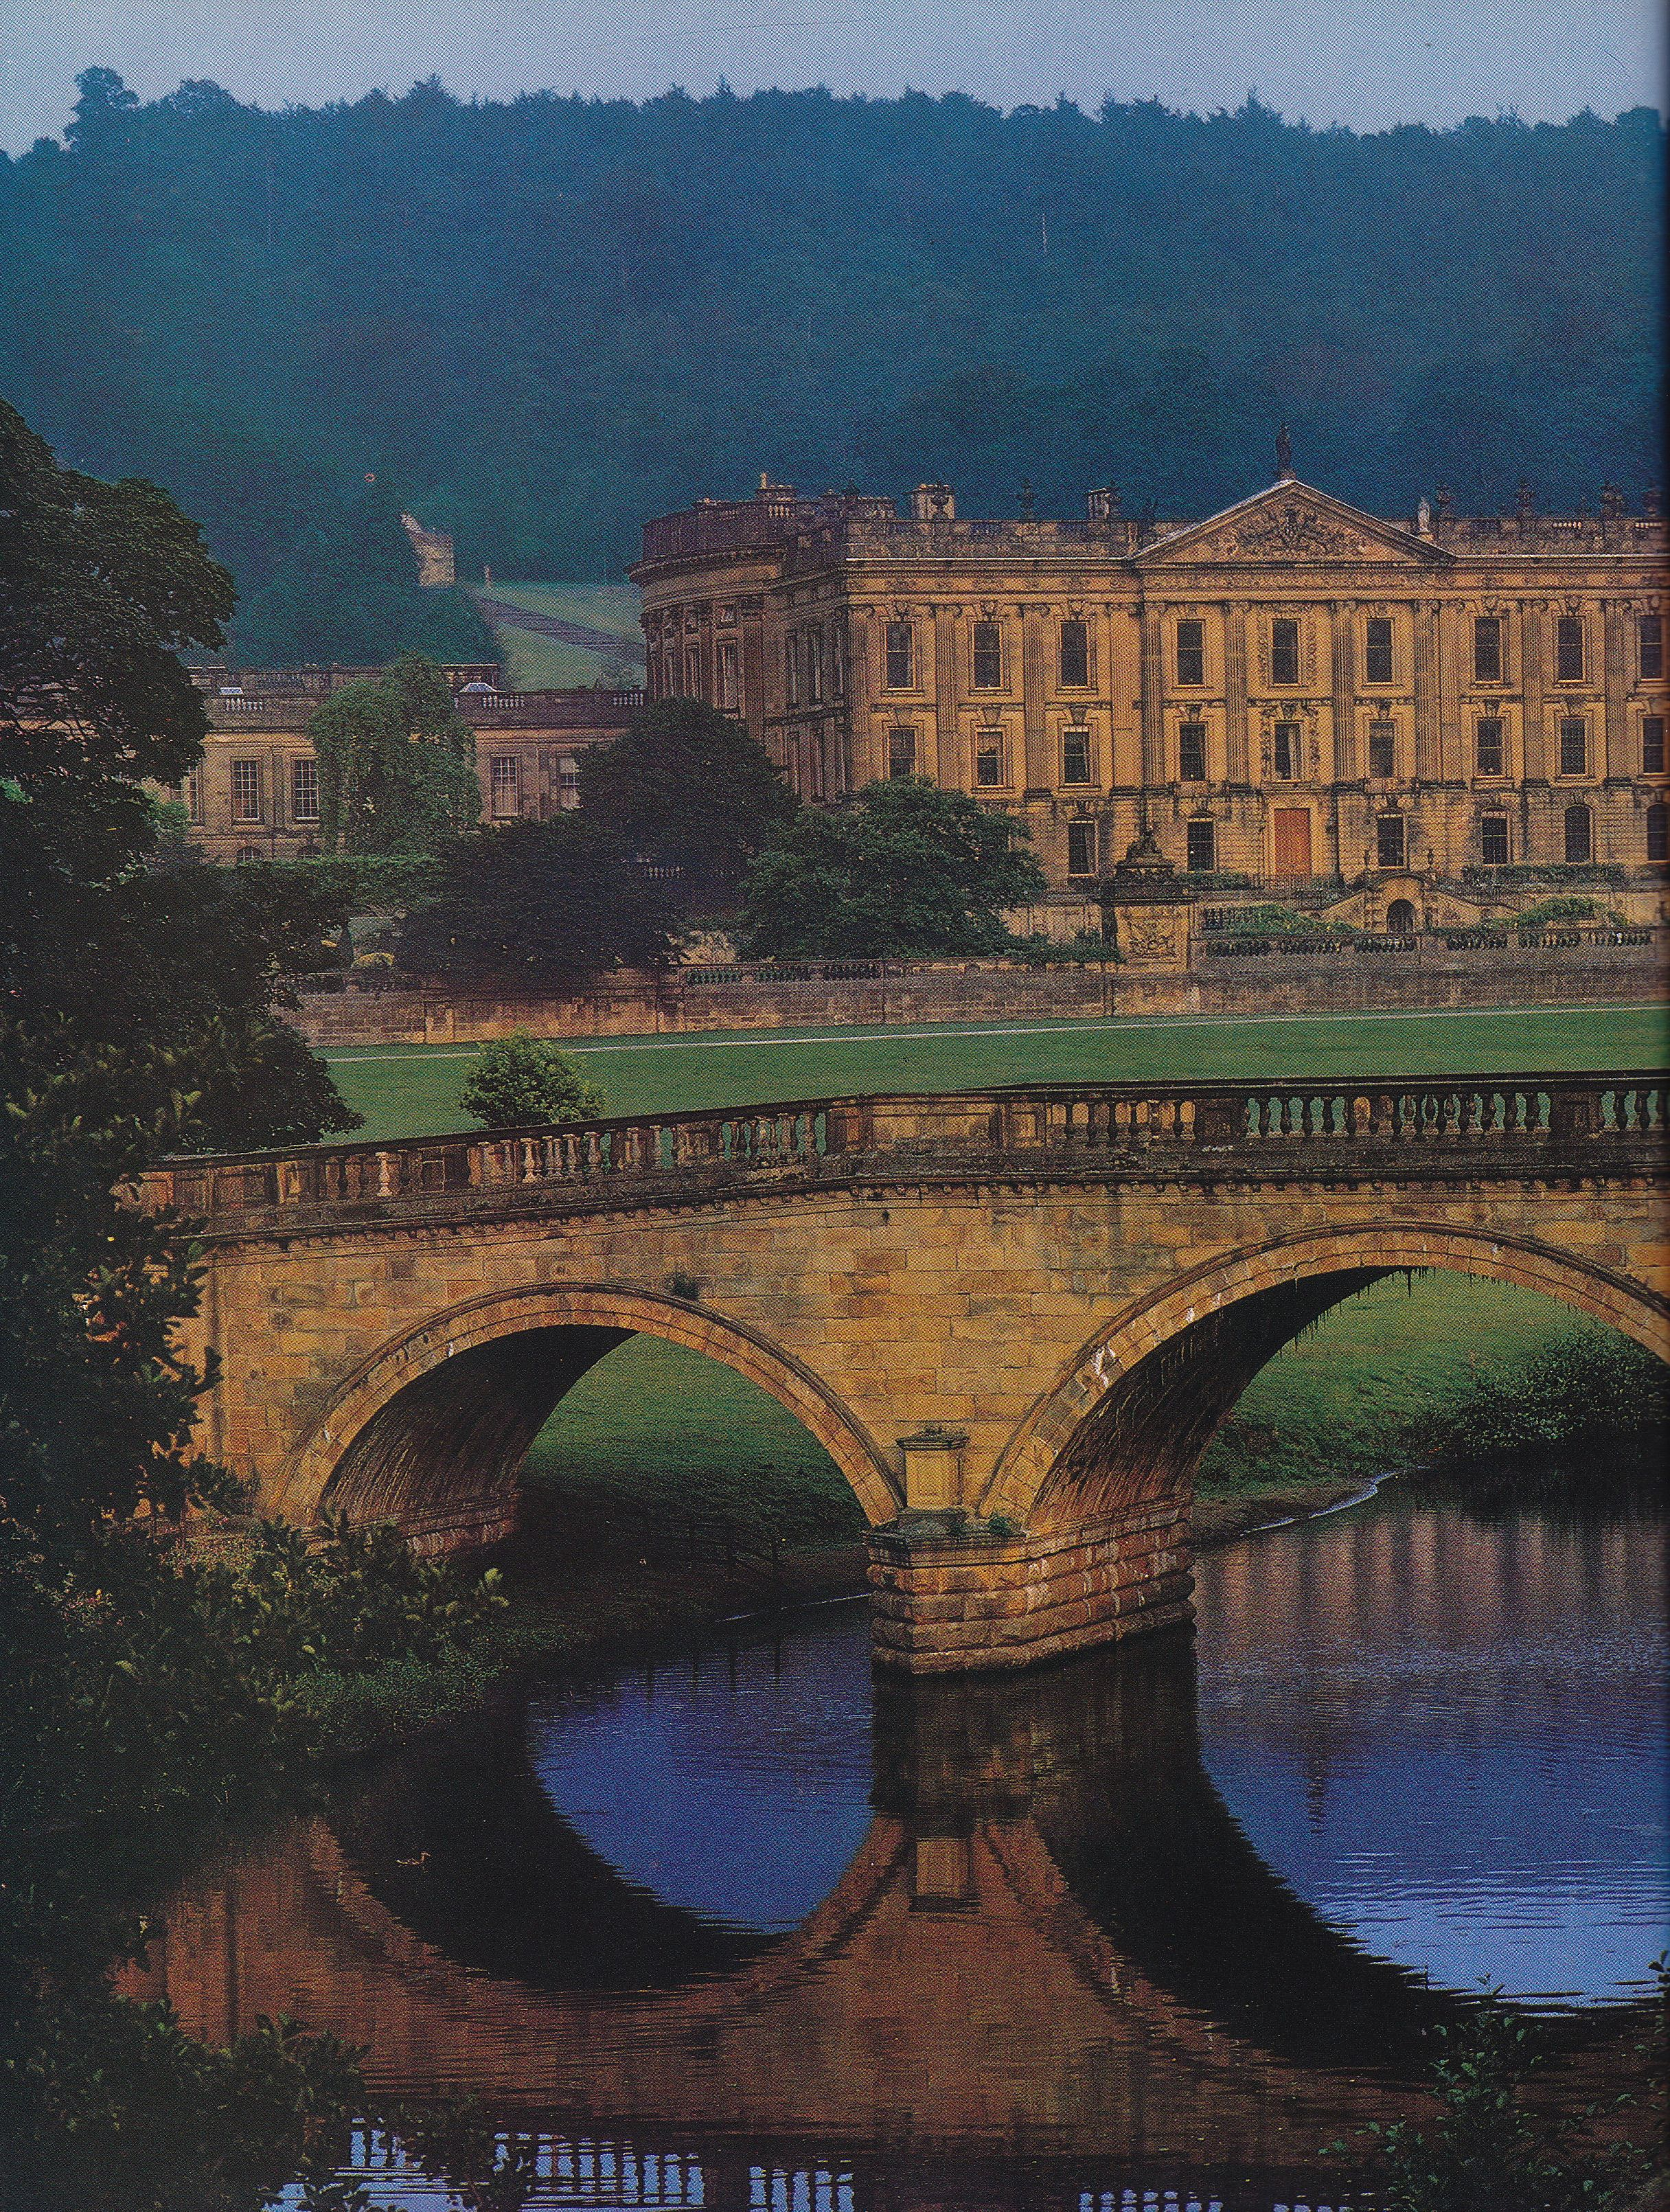 Chatsworth House History: Neoclassical Lawers House In Pertshire, Scotland, Designed